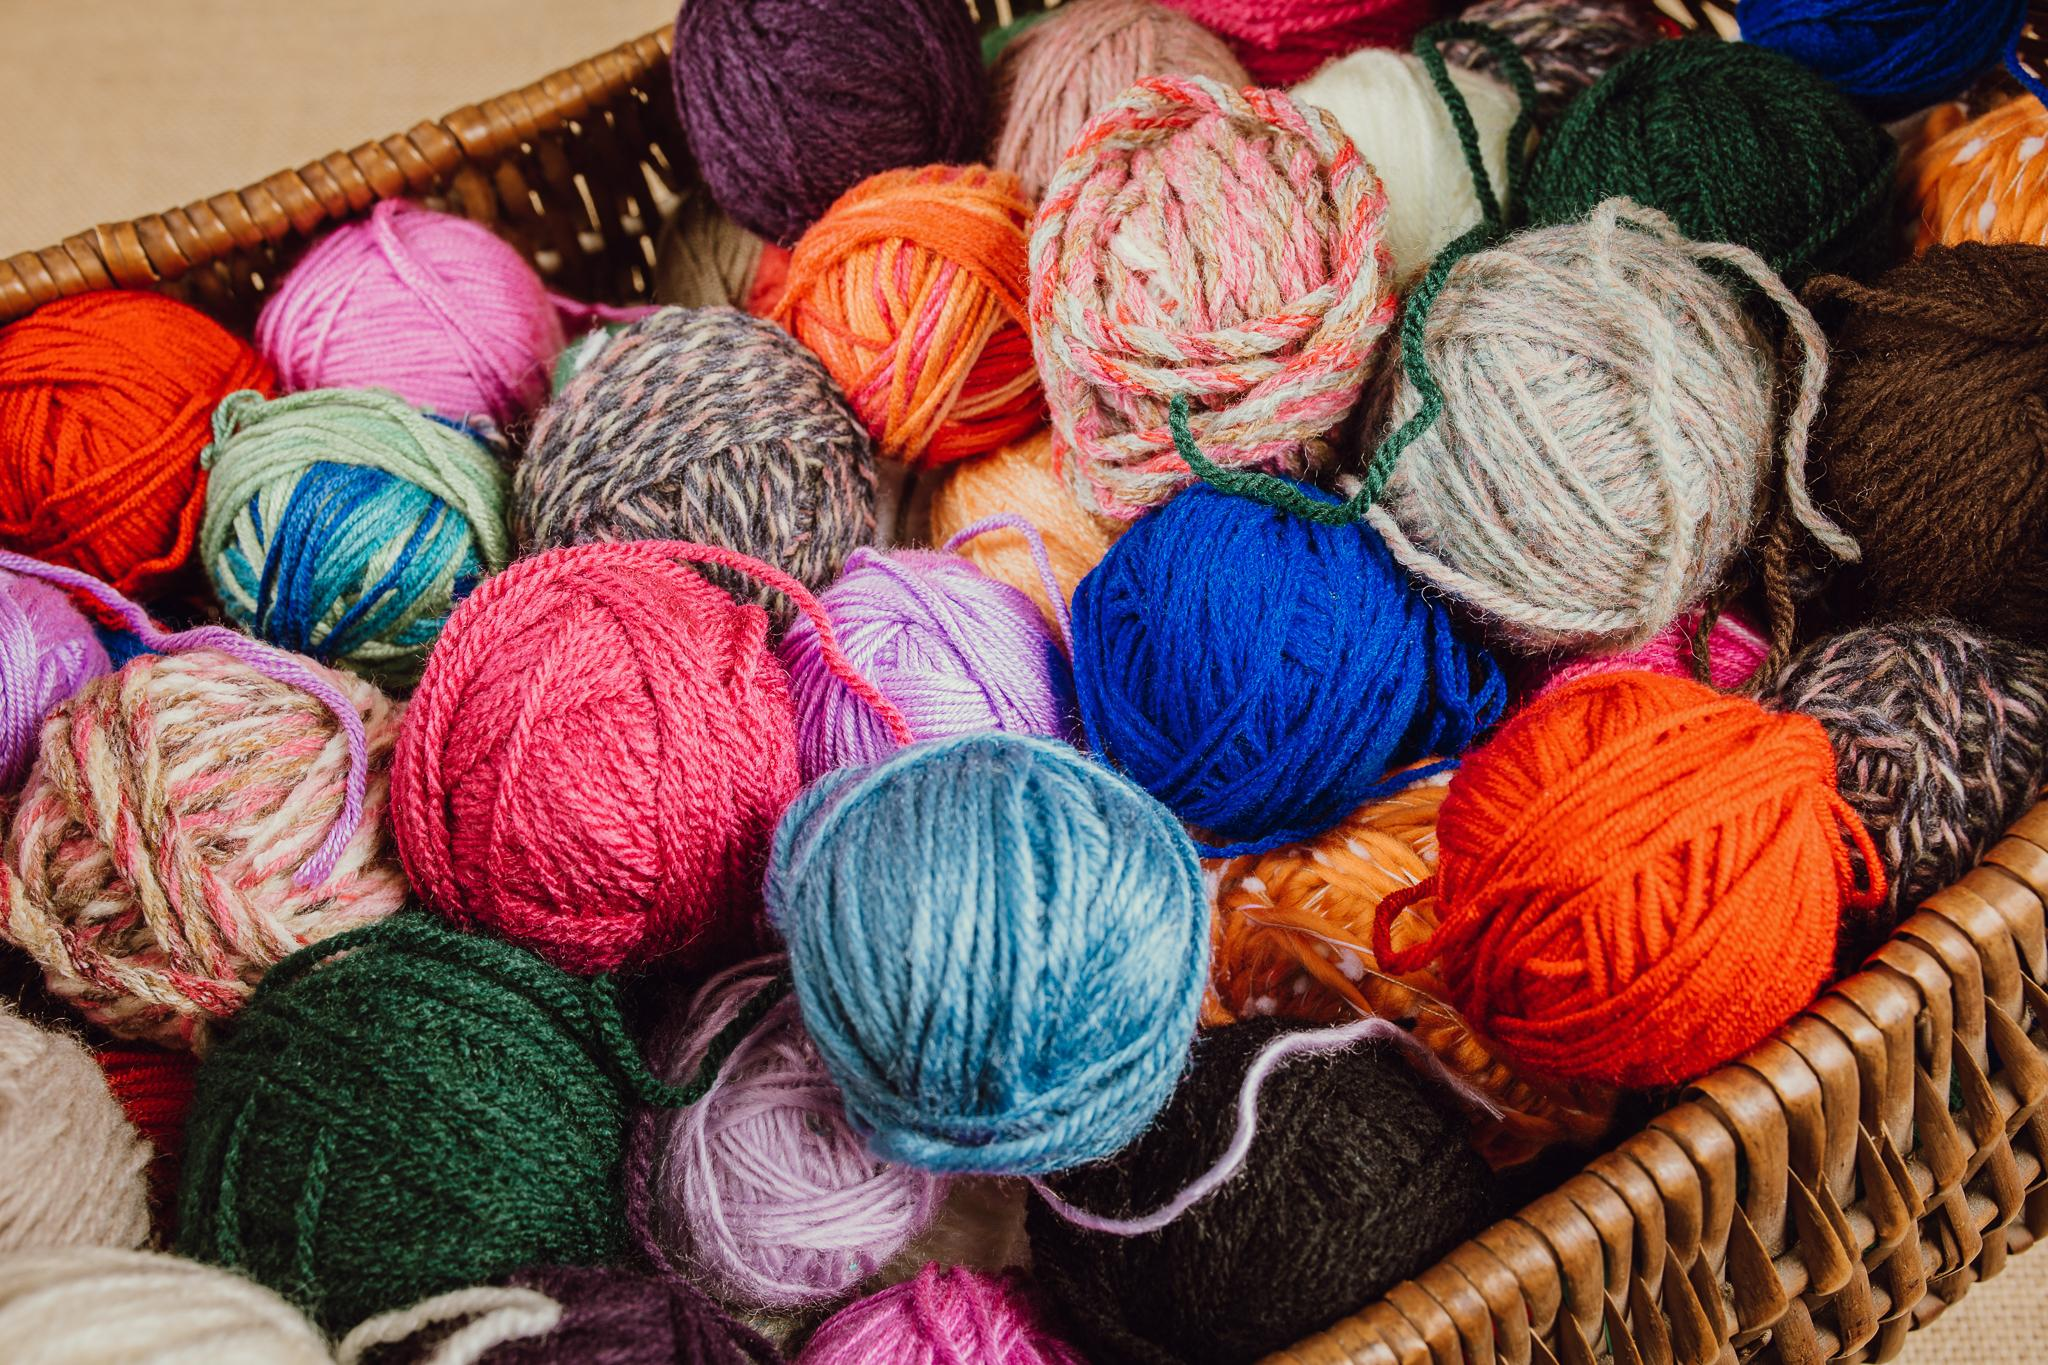 'Beyond the Square' - improvers crochet